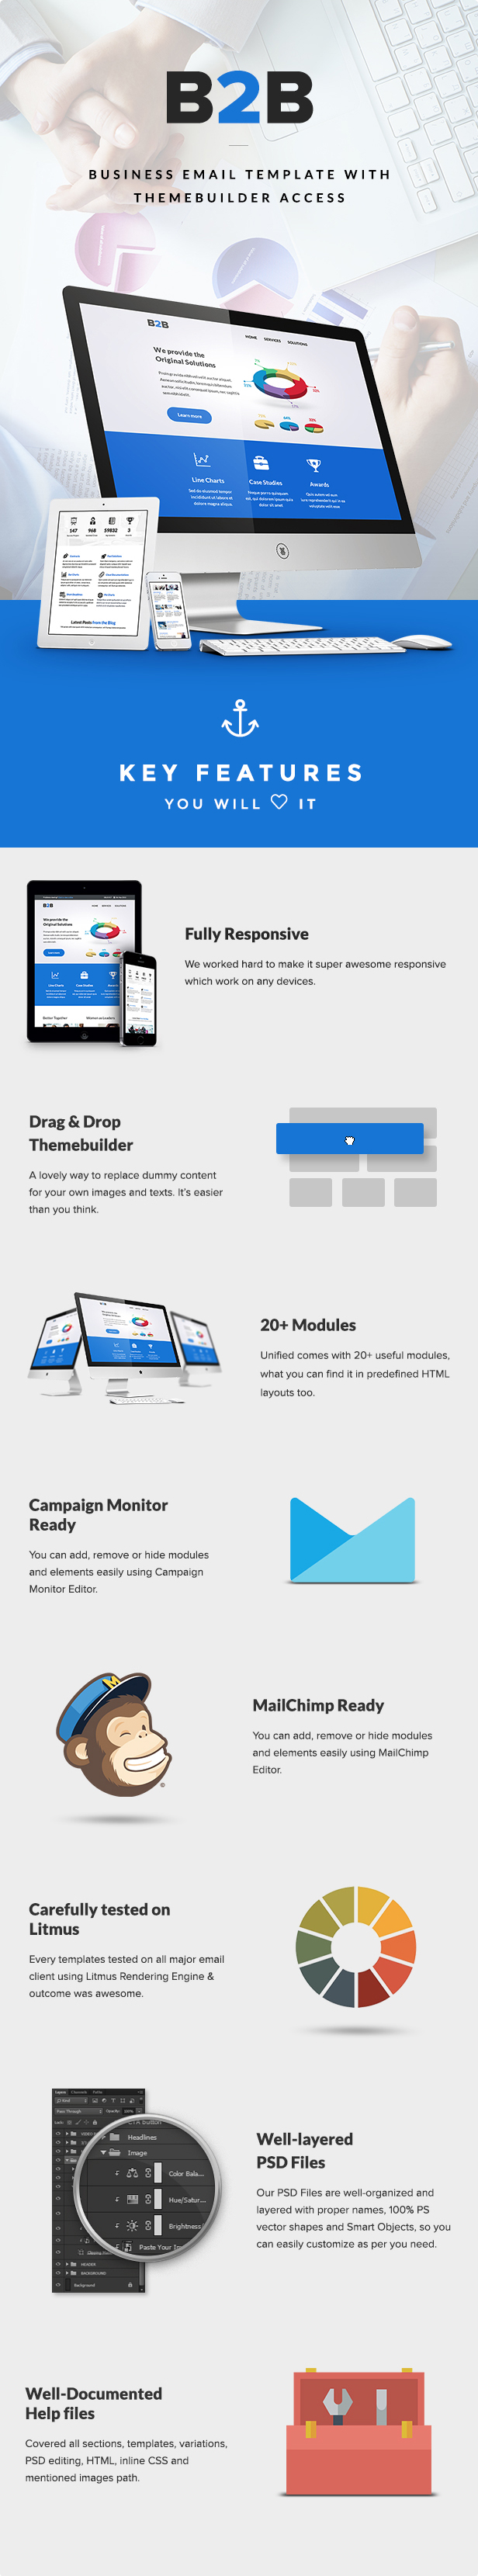 B2B - Business Email Template + Builder Access